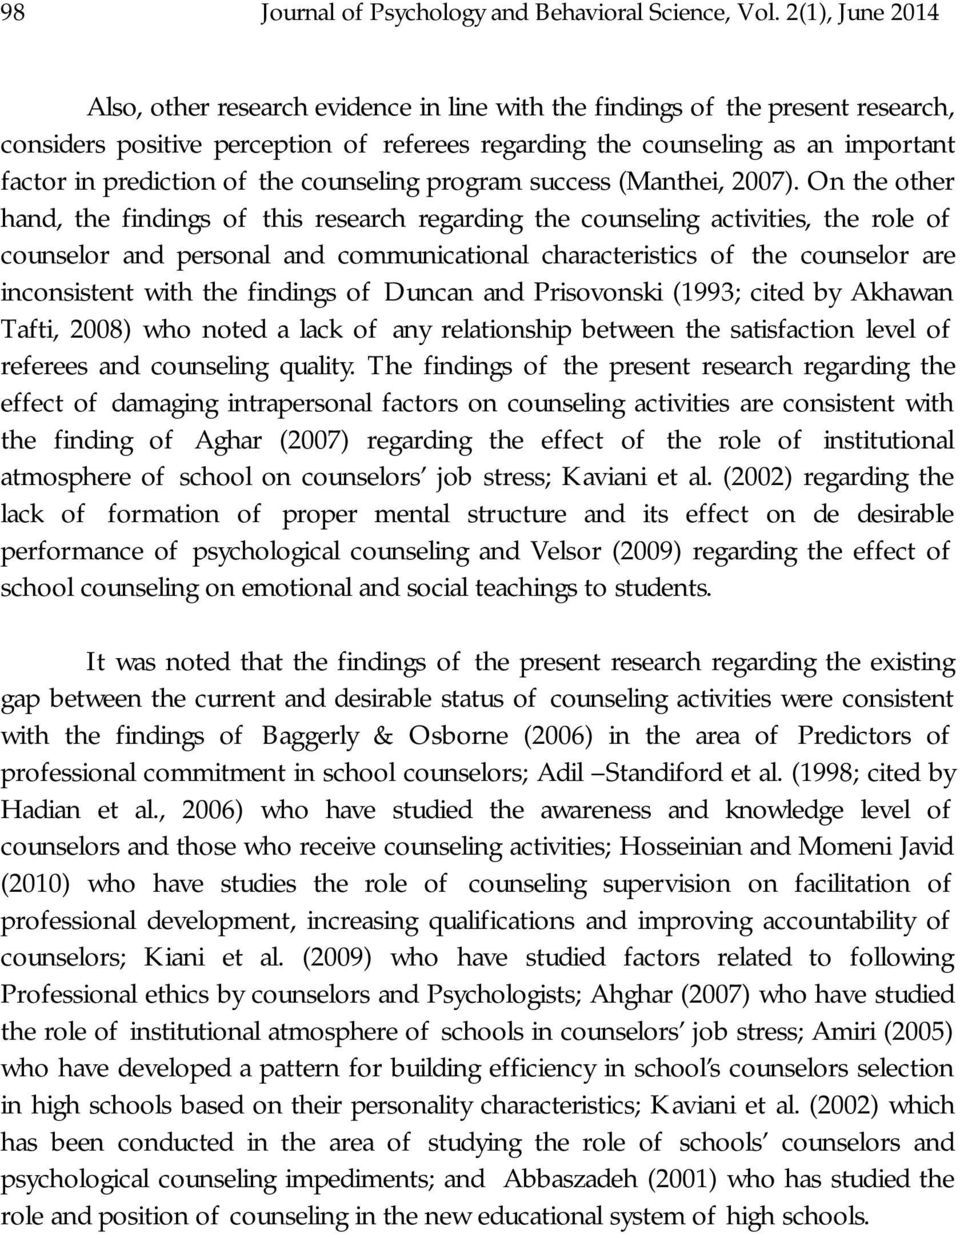 prediction of the counseling program success (Manthei, 2007).